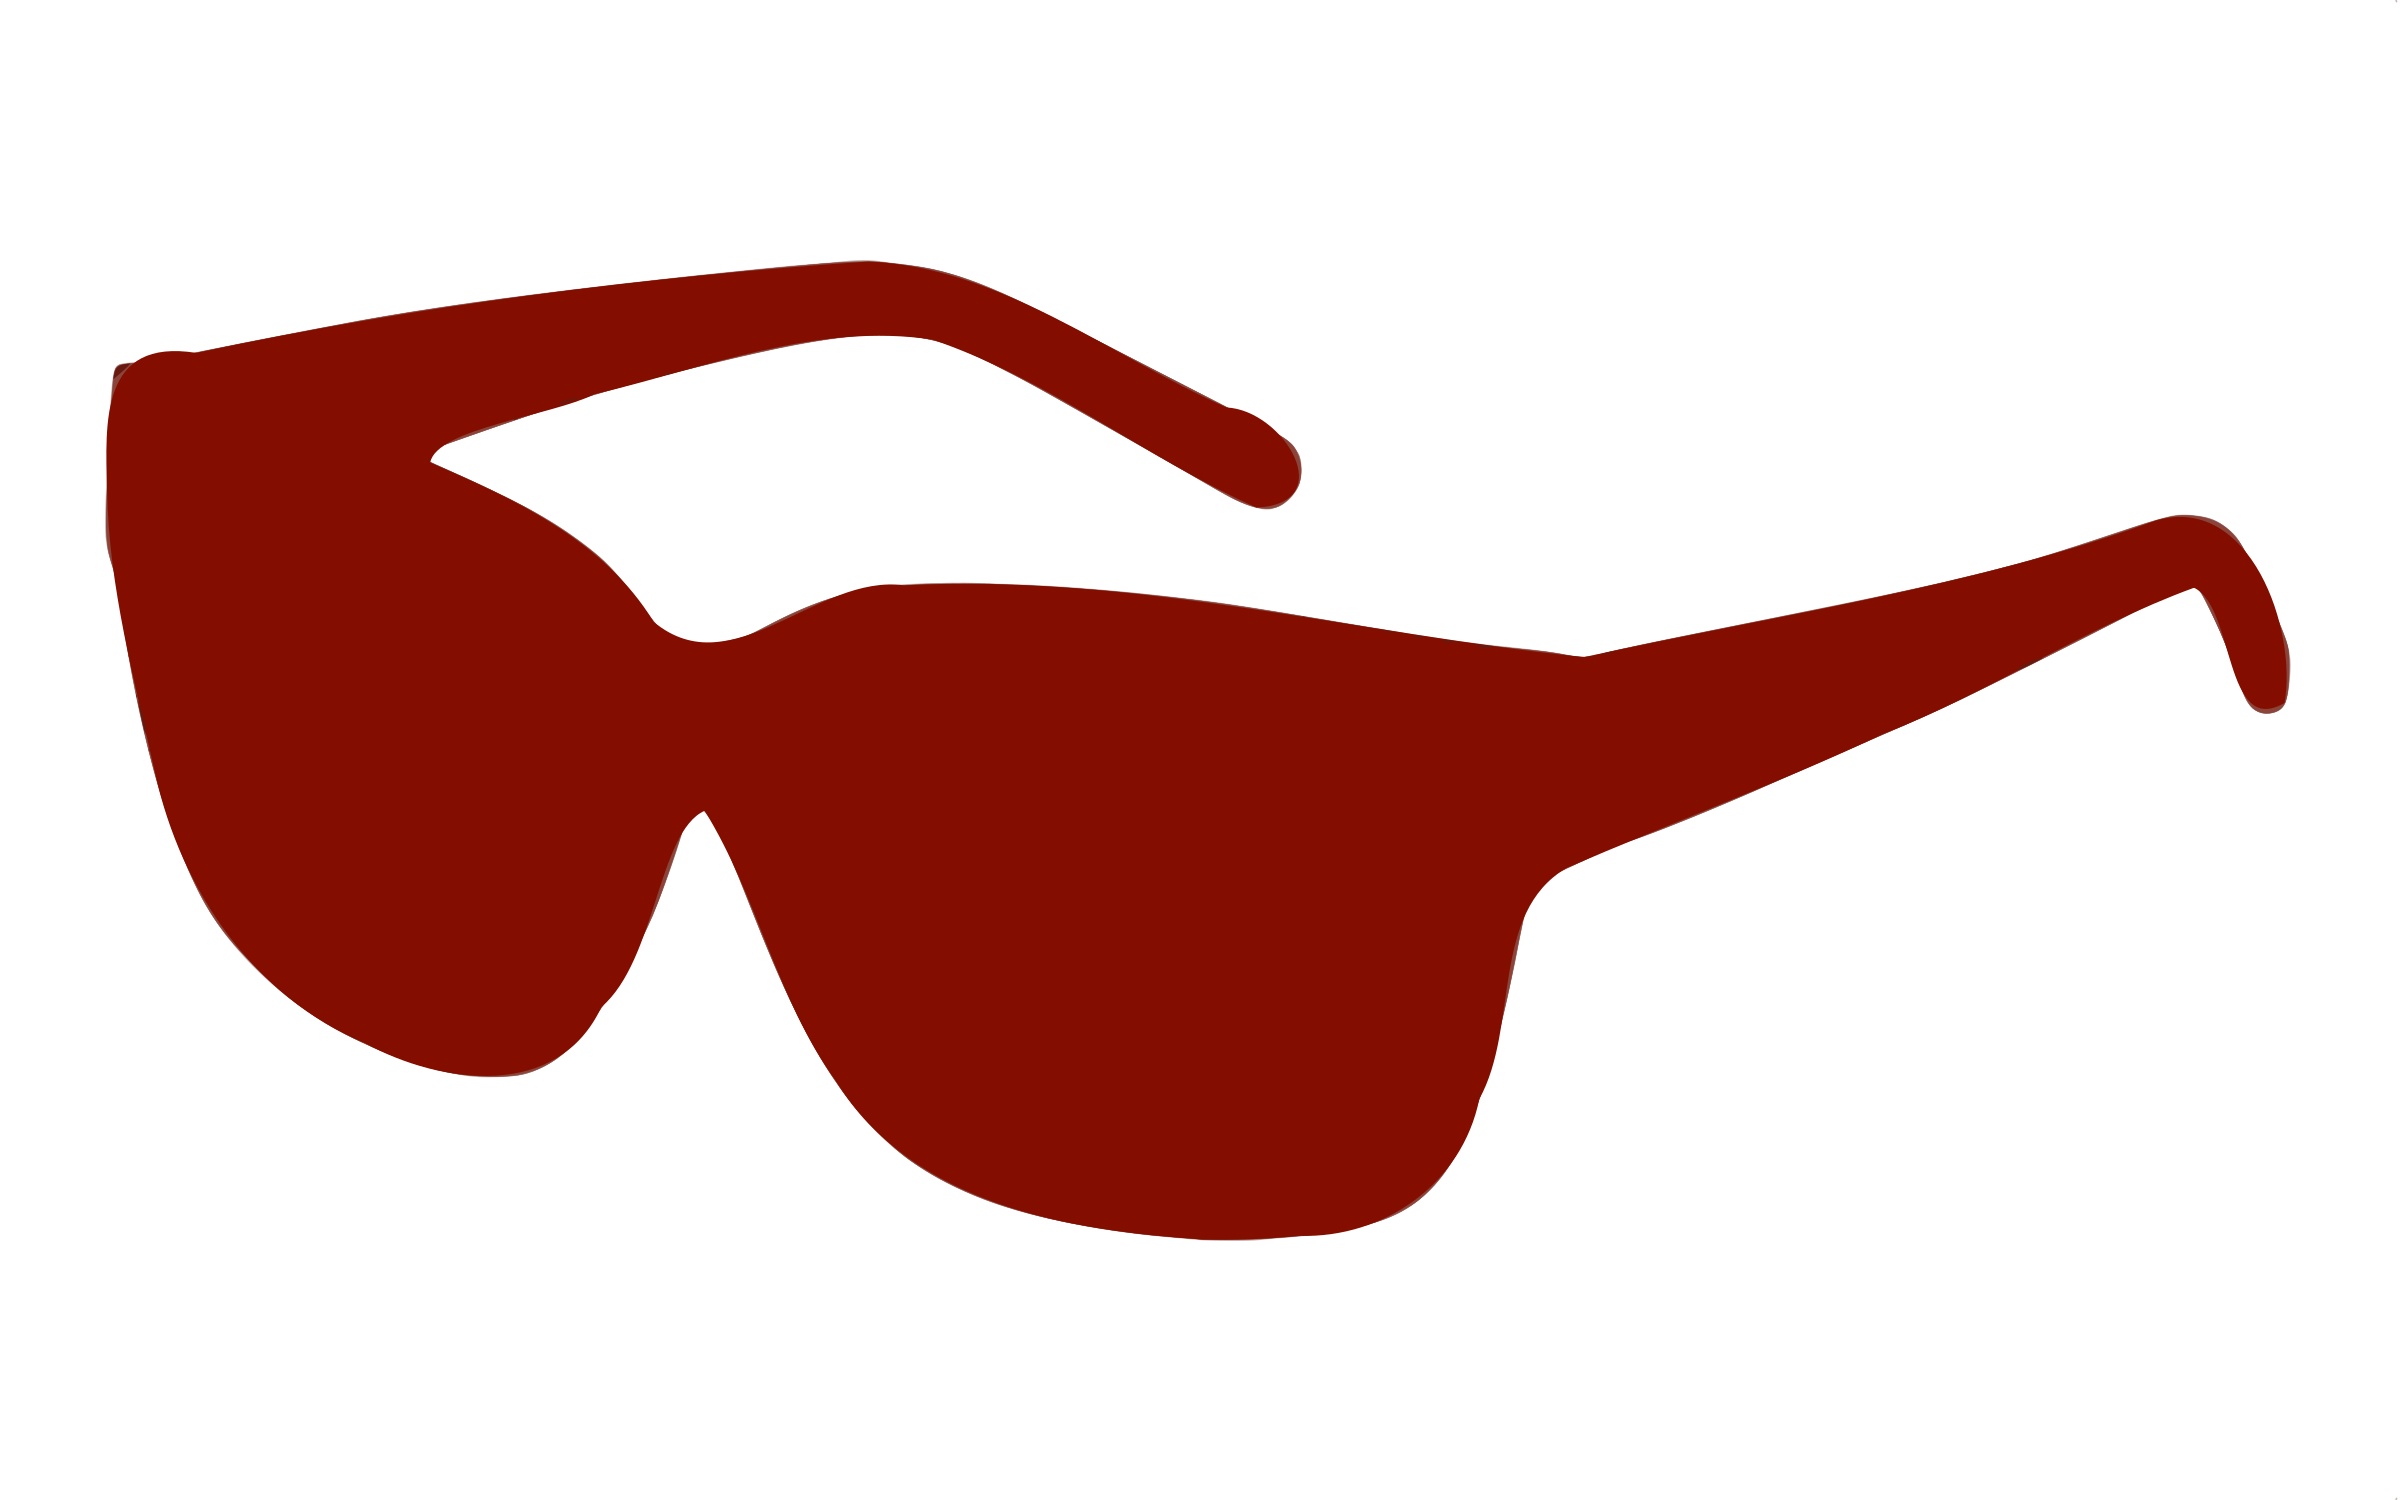 Objet icons png free. Goggles clipart silhouette